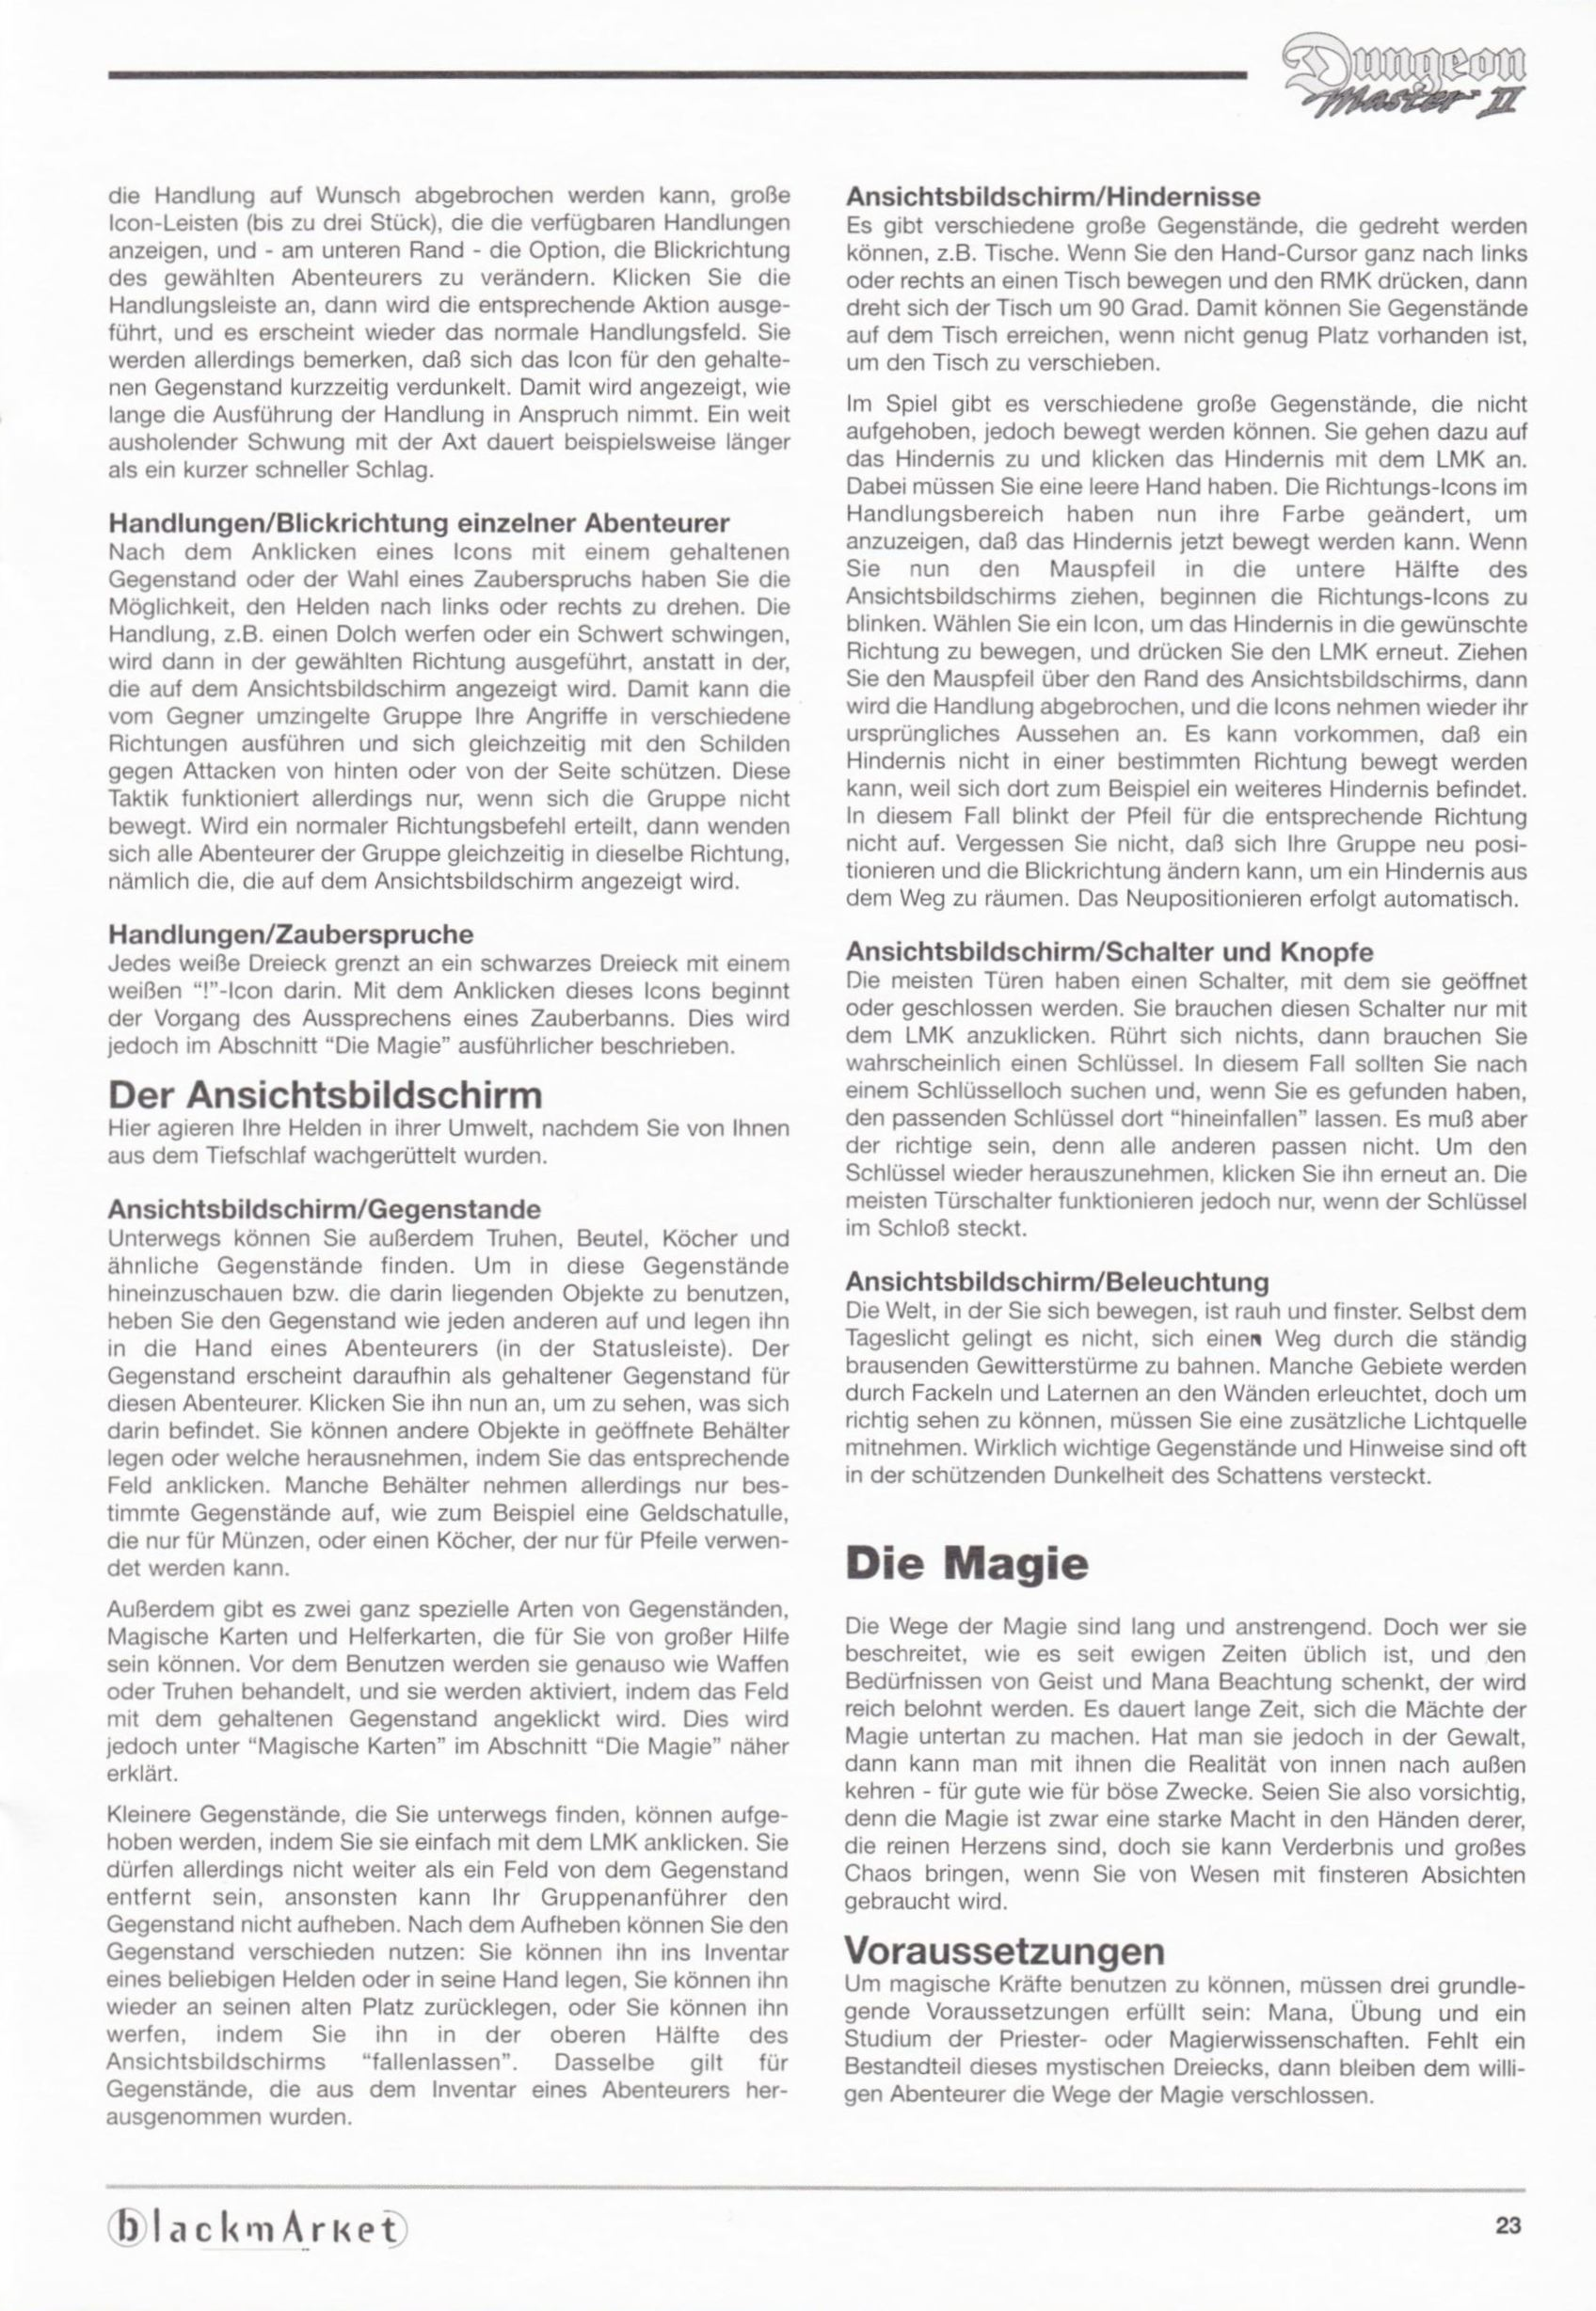 Game - Dungeon Master II - DE - PC - Blackmarket With Manual - Manual - Page 025 - Scan